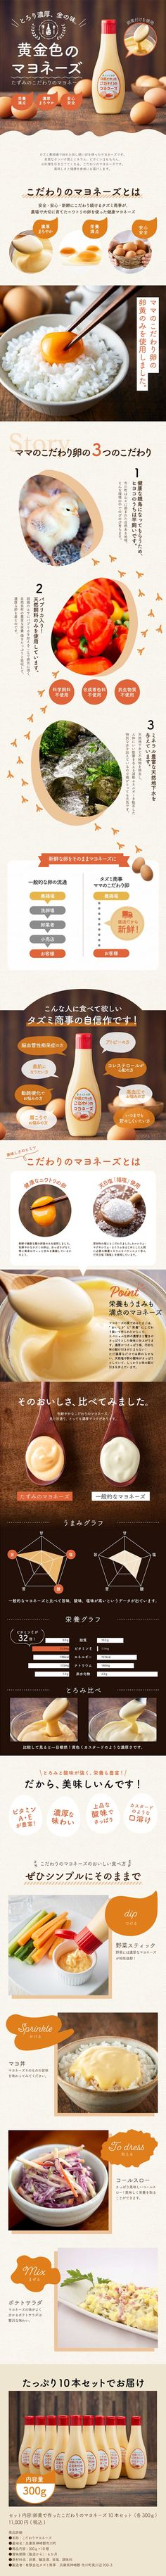 """Hyogo Prefecture Ichikawa Town Hometown Tax Payment Site """"Egg Yolk Special Mayonnaise"""" Landing Page (LP) Cleanliness Food Web Design, Site Design, Food Banner, Web Banner, Poster Design Layout, Japan Design, Website Layout, Web Inspiration, Type Setting"""